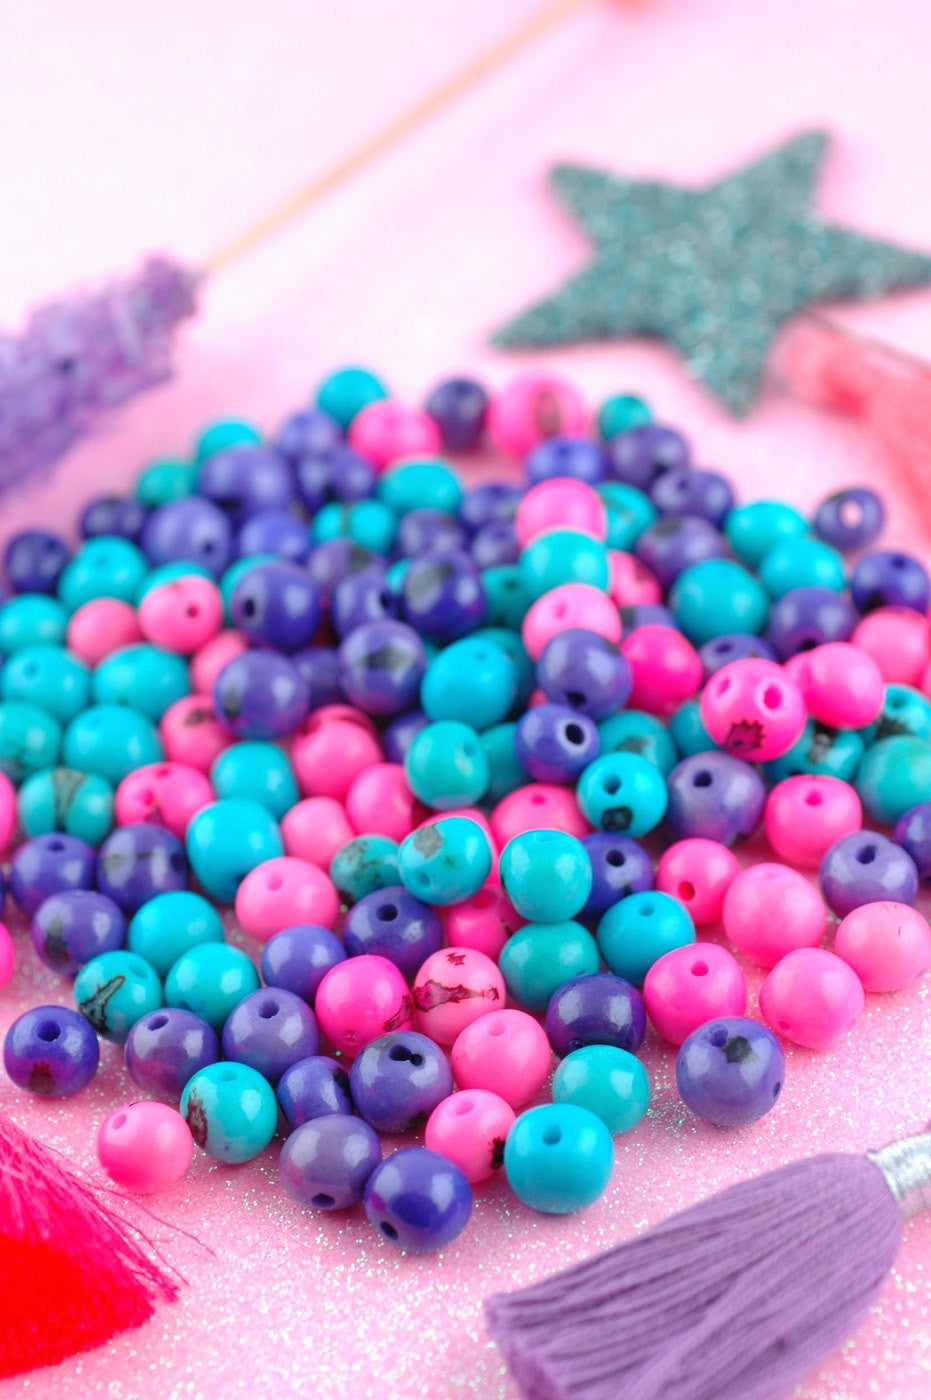 Sweet Sunrise Acai Beads Mix: Real, Natural South American Eco- Friendly, 10mm, 100 beads, Pink, Purple, Aqua Mix, Jewelry Making Supply - WomanShopsWorld